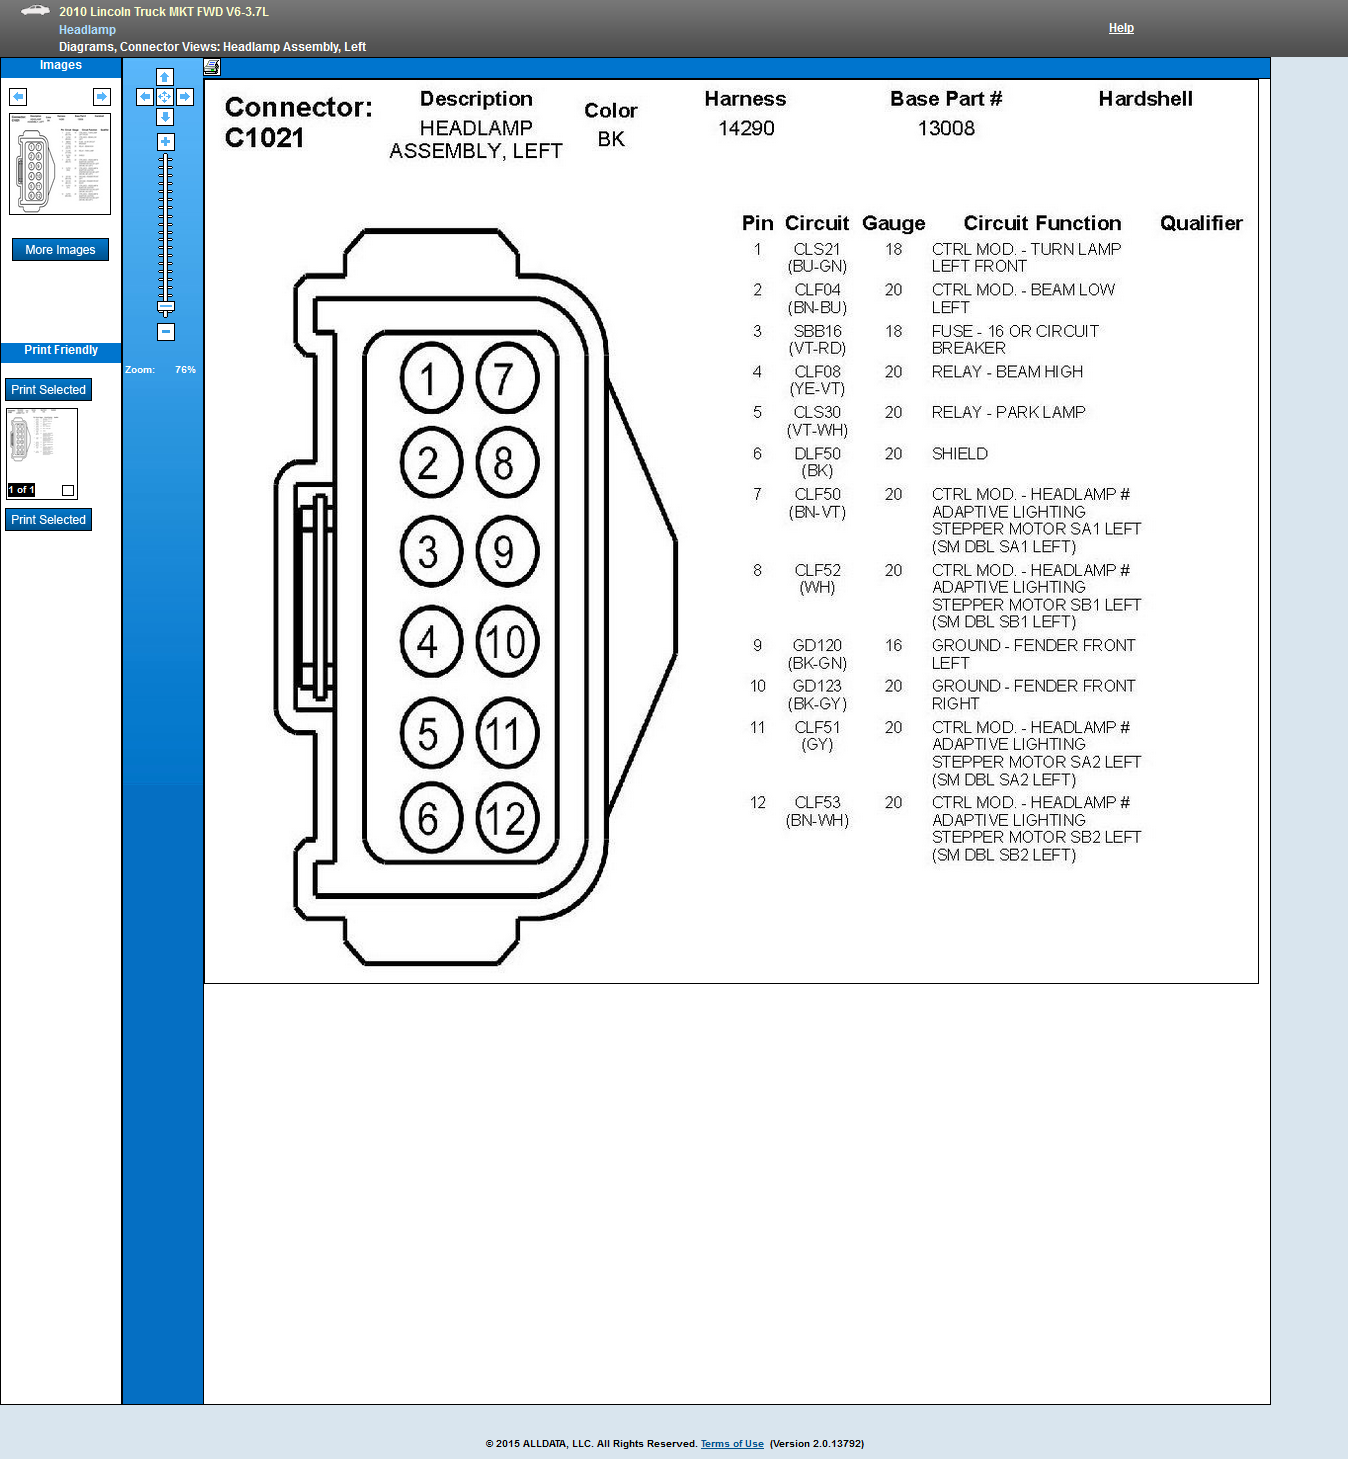 I need a pinout and wire color diagram for a 2010 Lincoln ... Headlight Wiring Harness Lincoln Mkx on